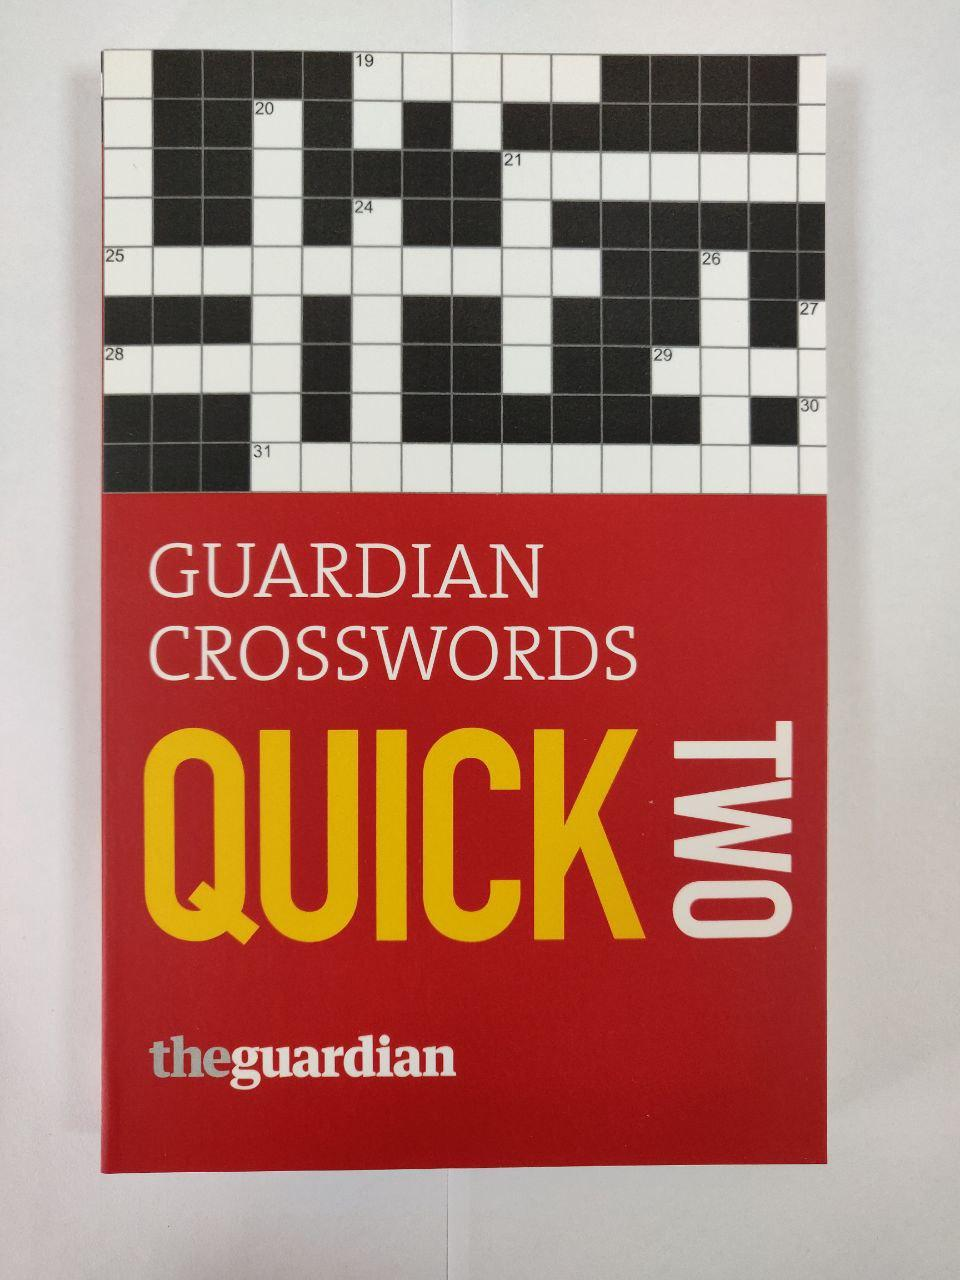 Guardian Crosswords Quick Two